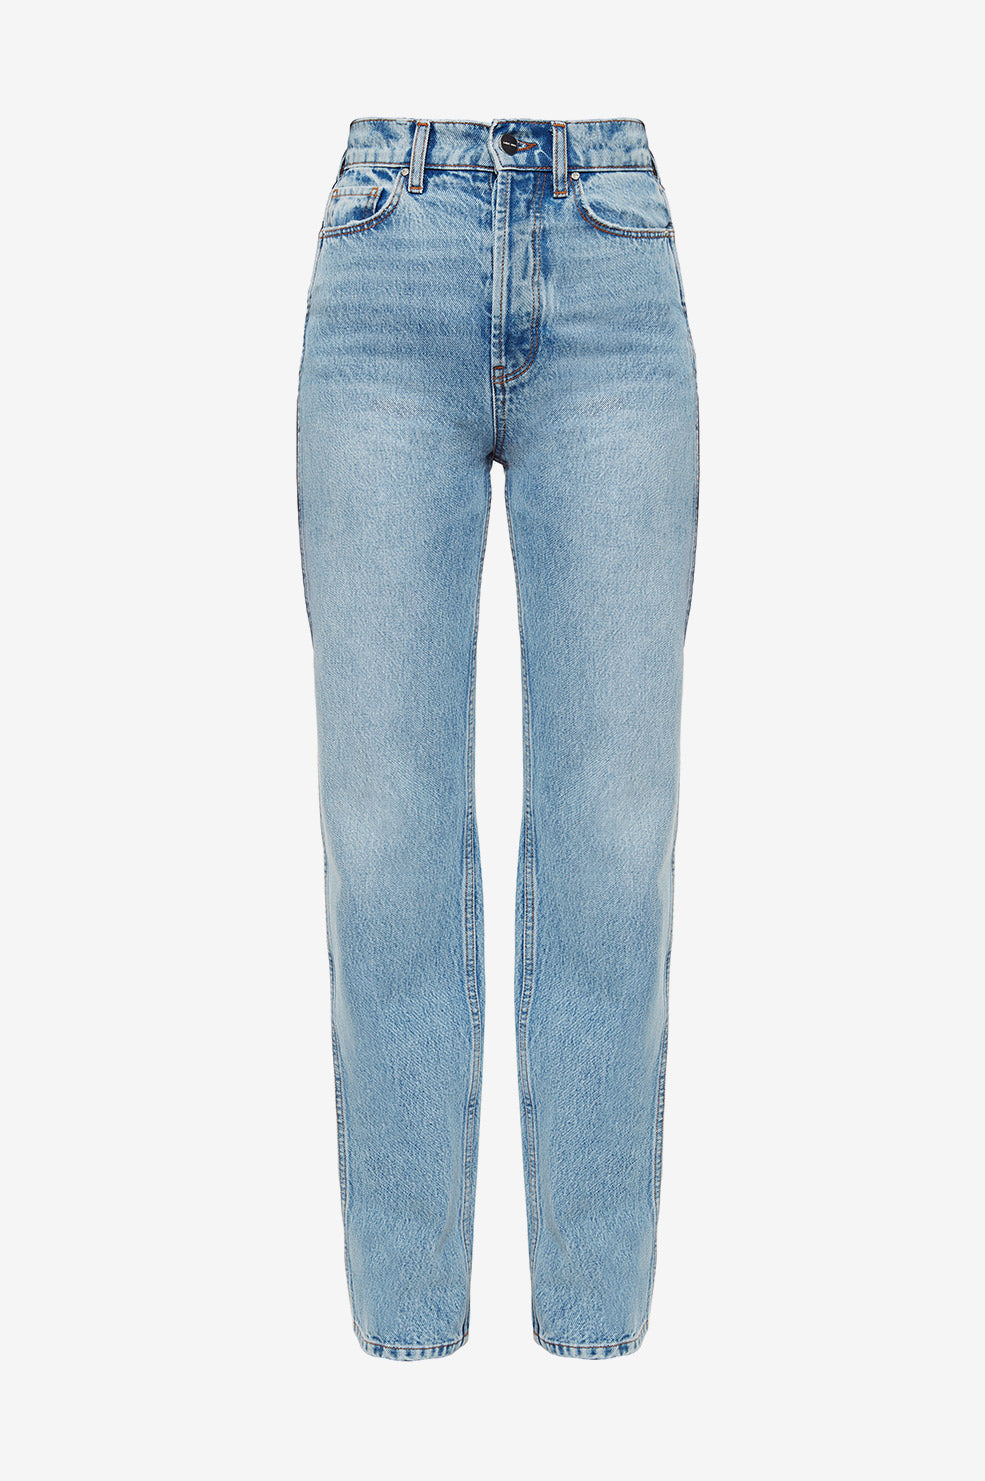 ANINE BING Kat Jean AB X HC - Light Blue